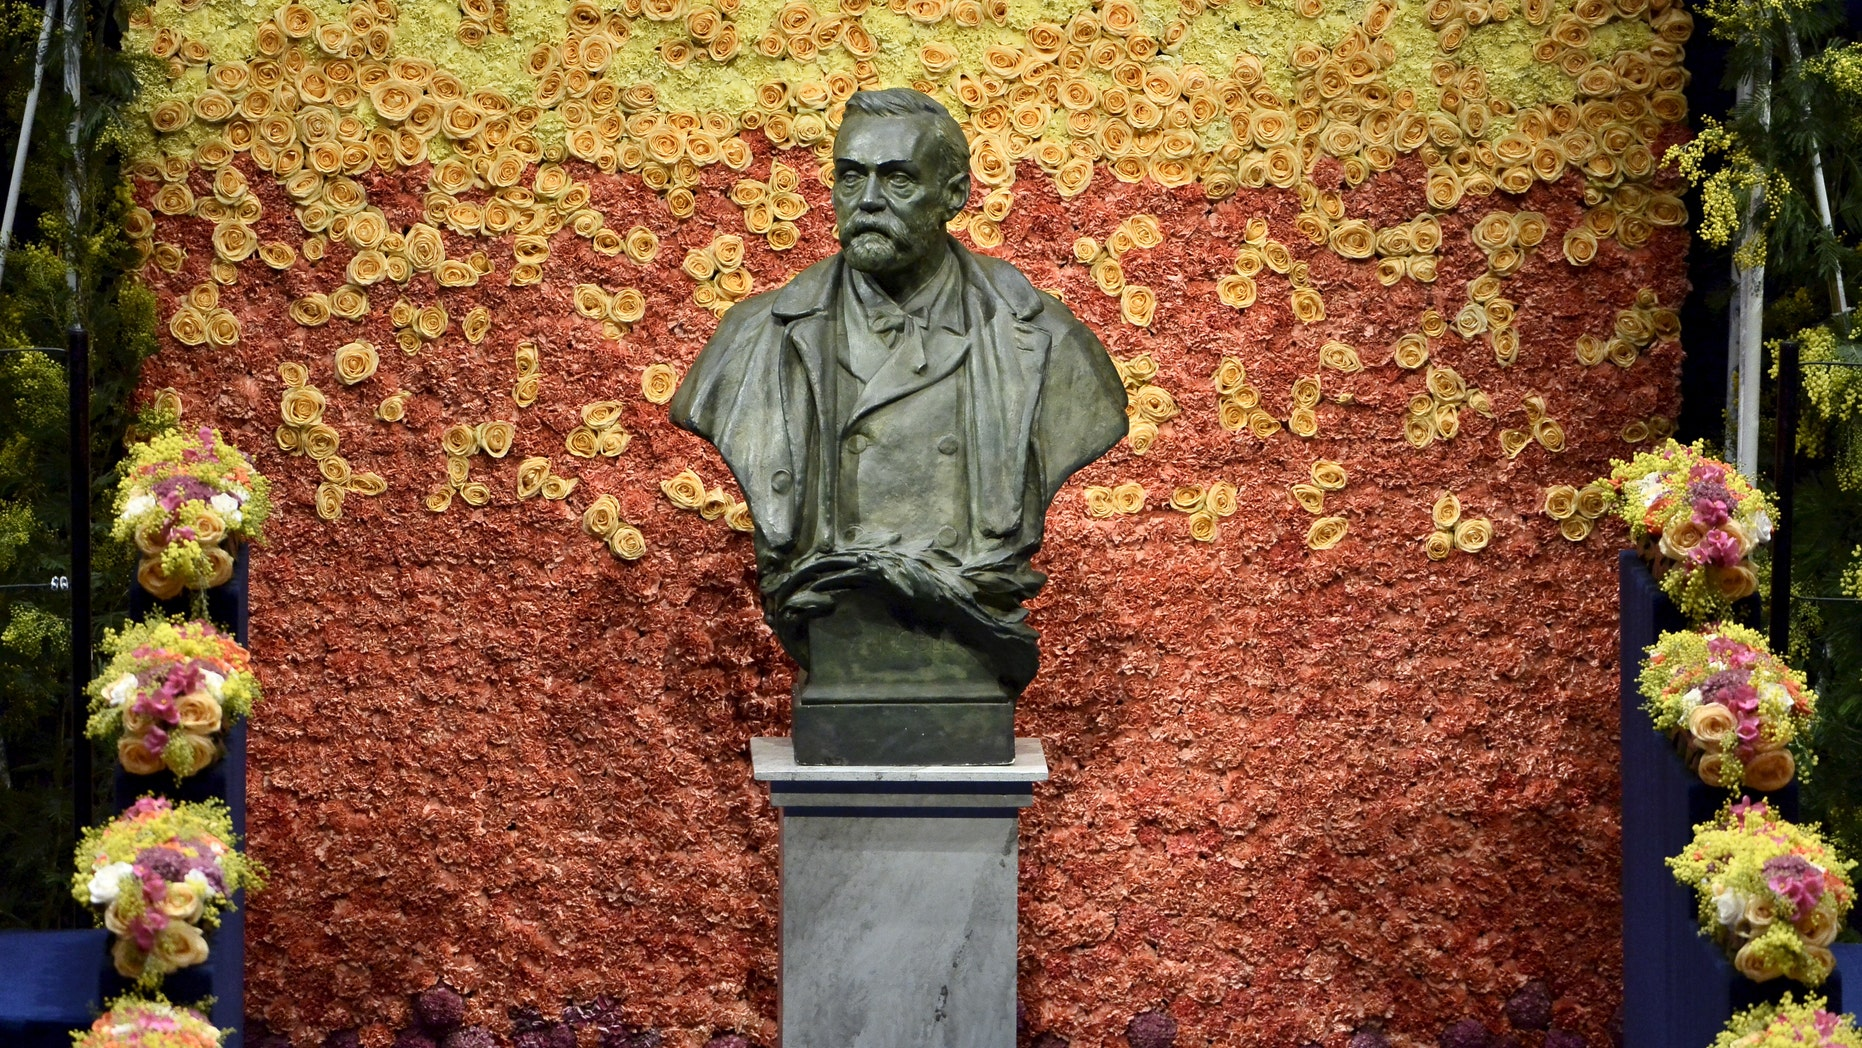 File photo - A bust of Swedish industrialist and armaments manufacturer Alfred Nobel is seen on the stage of Stockholm Concert Hall prior to the 2015 Nobel prize award ceremony Dec. 10, 2015. (REUTERS/Claudio Bresciani/TT News Agency)